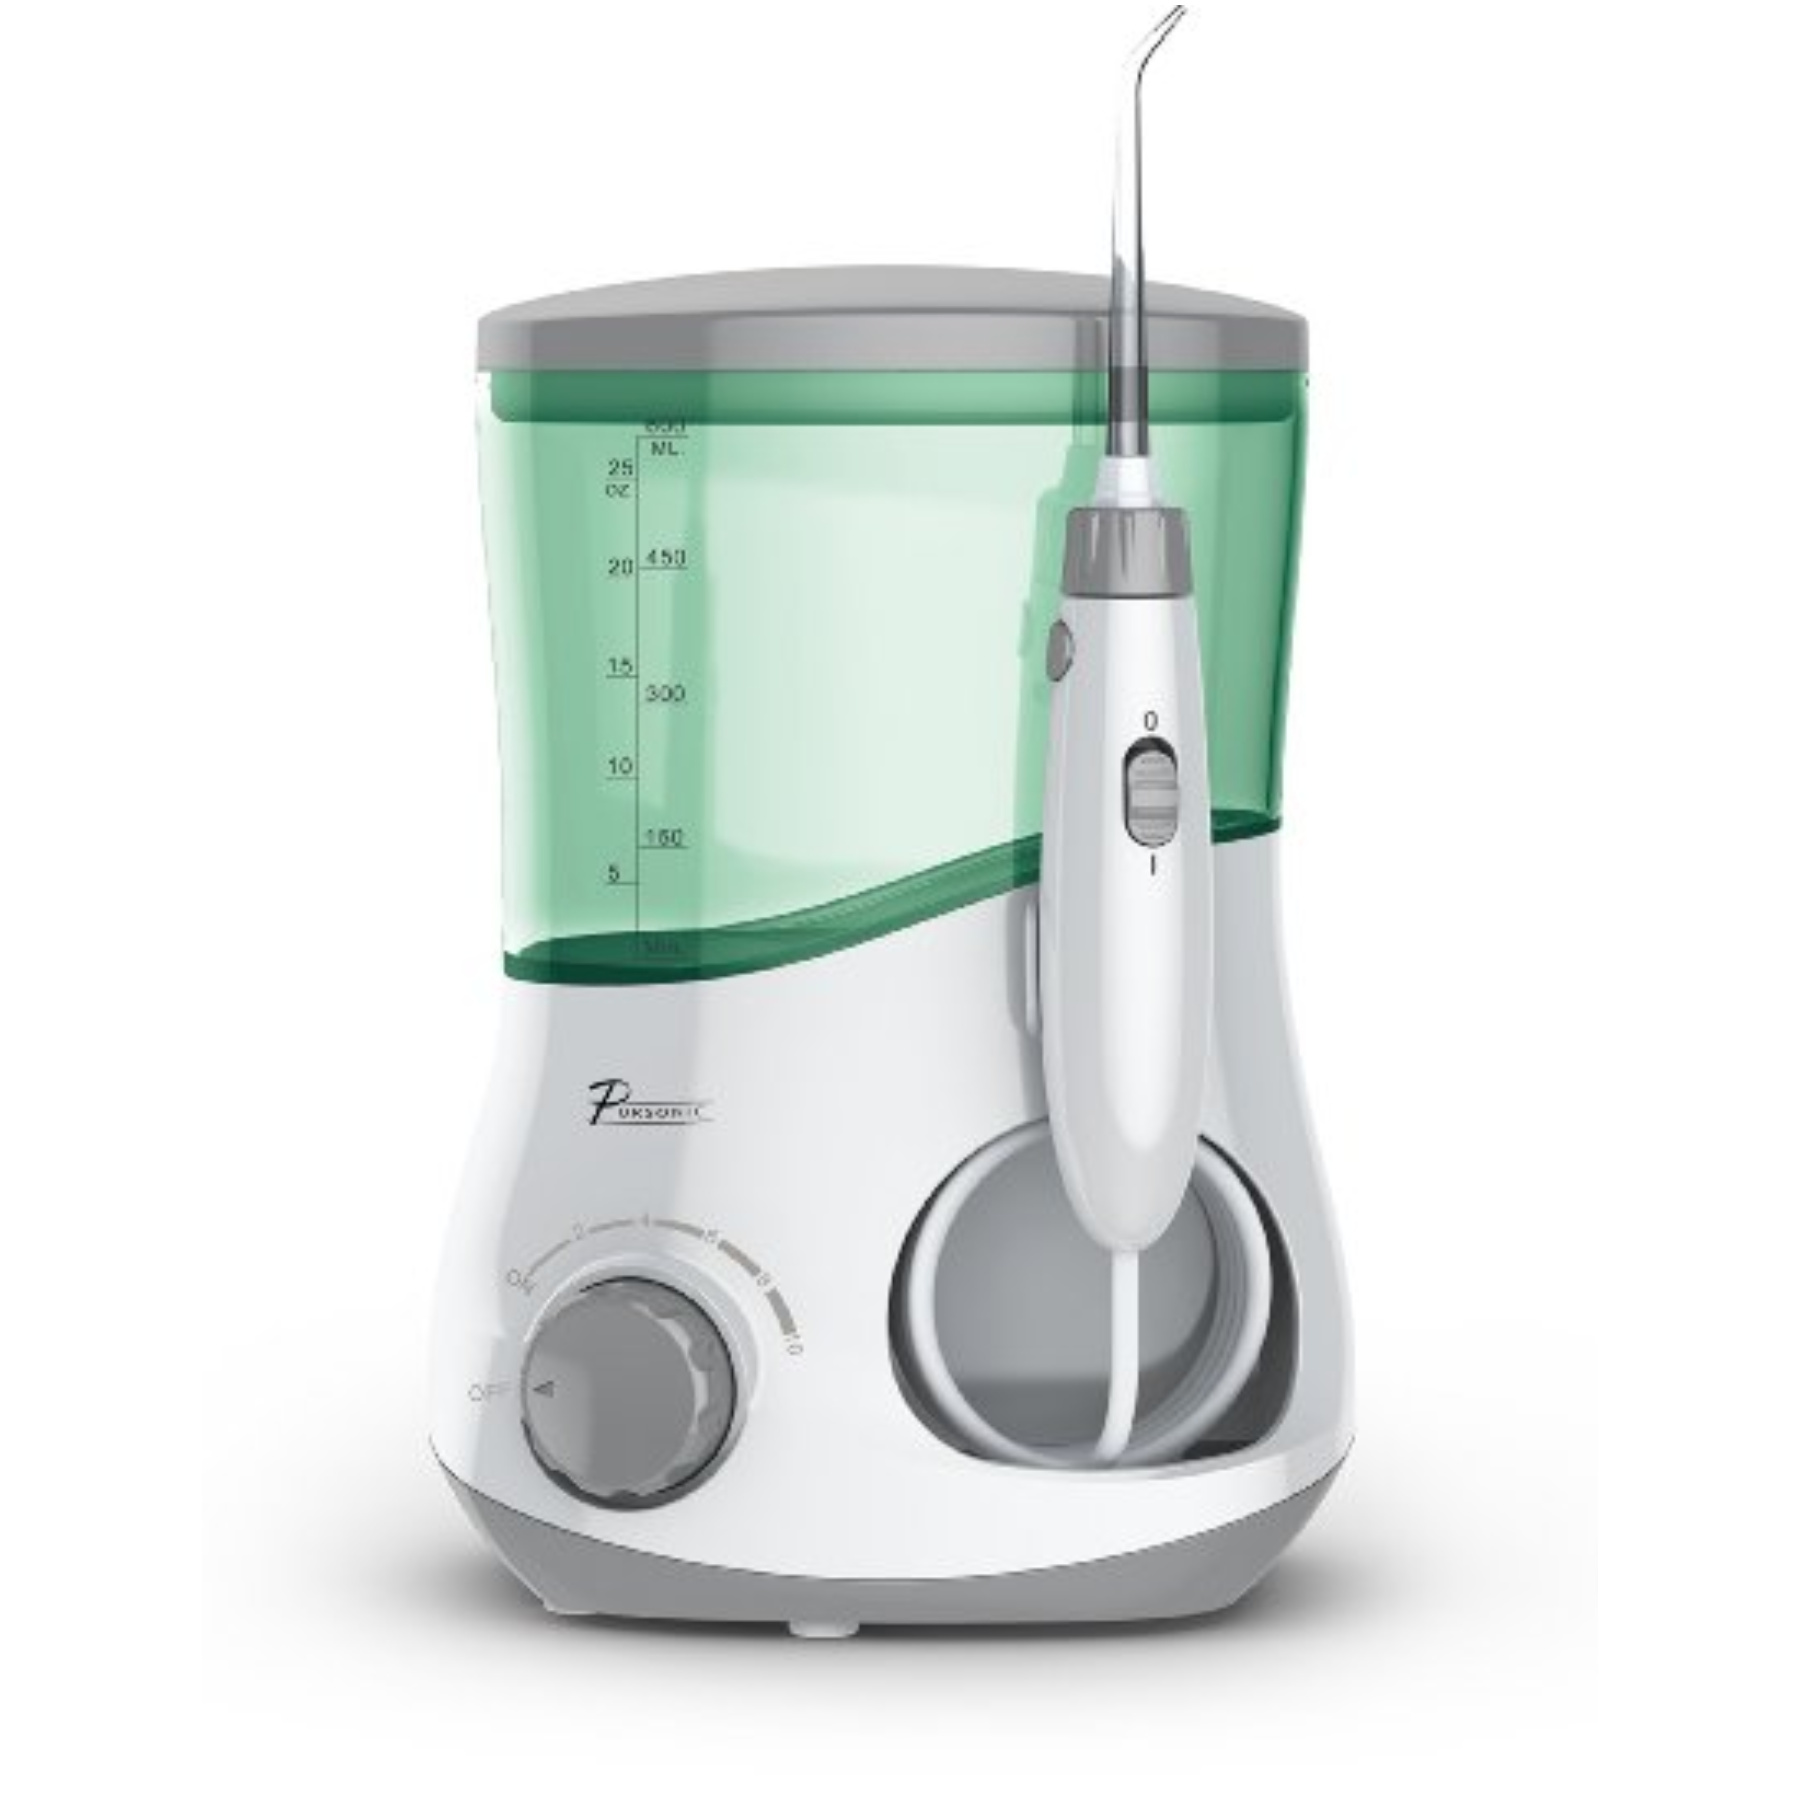 PURSONIC OI200 ORAL IRRIGATOR WATER FLOSSER COUNTER TOP